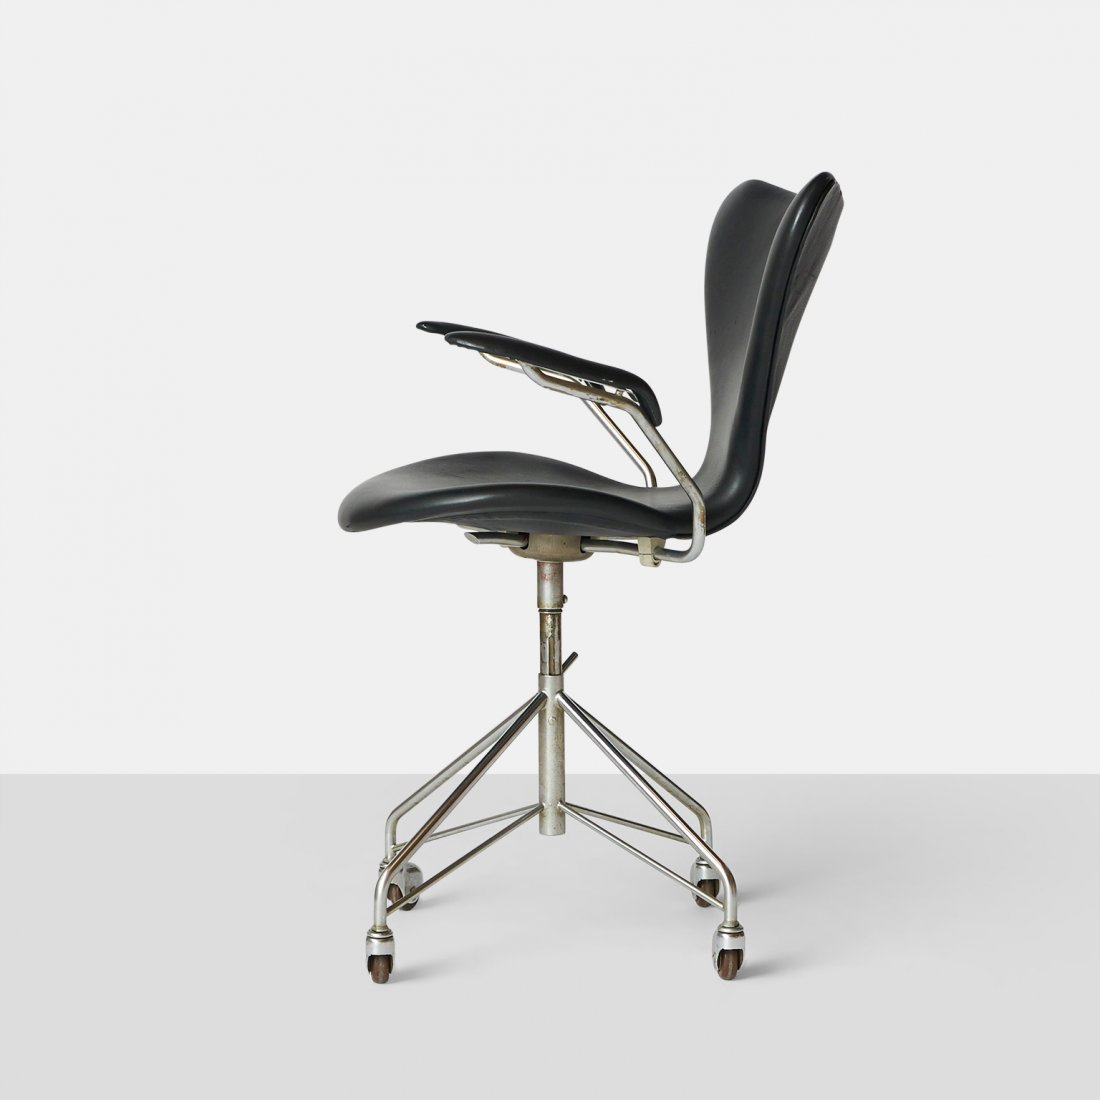 Arne Jacobsen, Series 7 Office Chair with Arms - 2